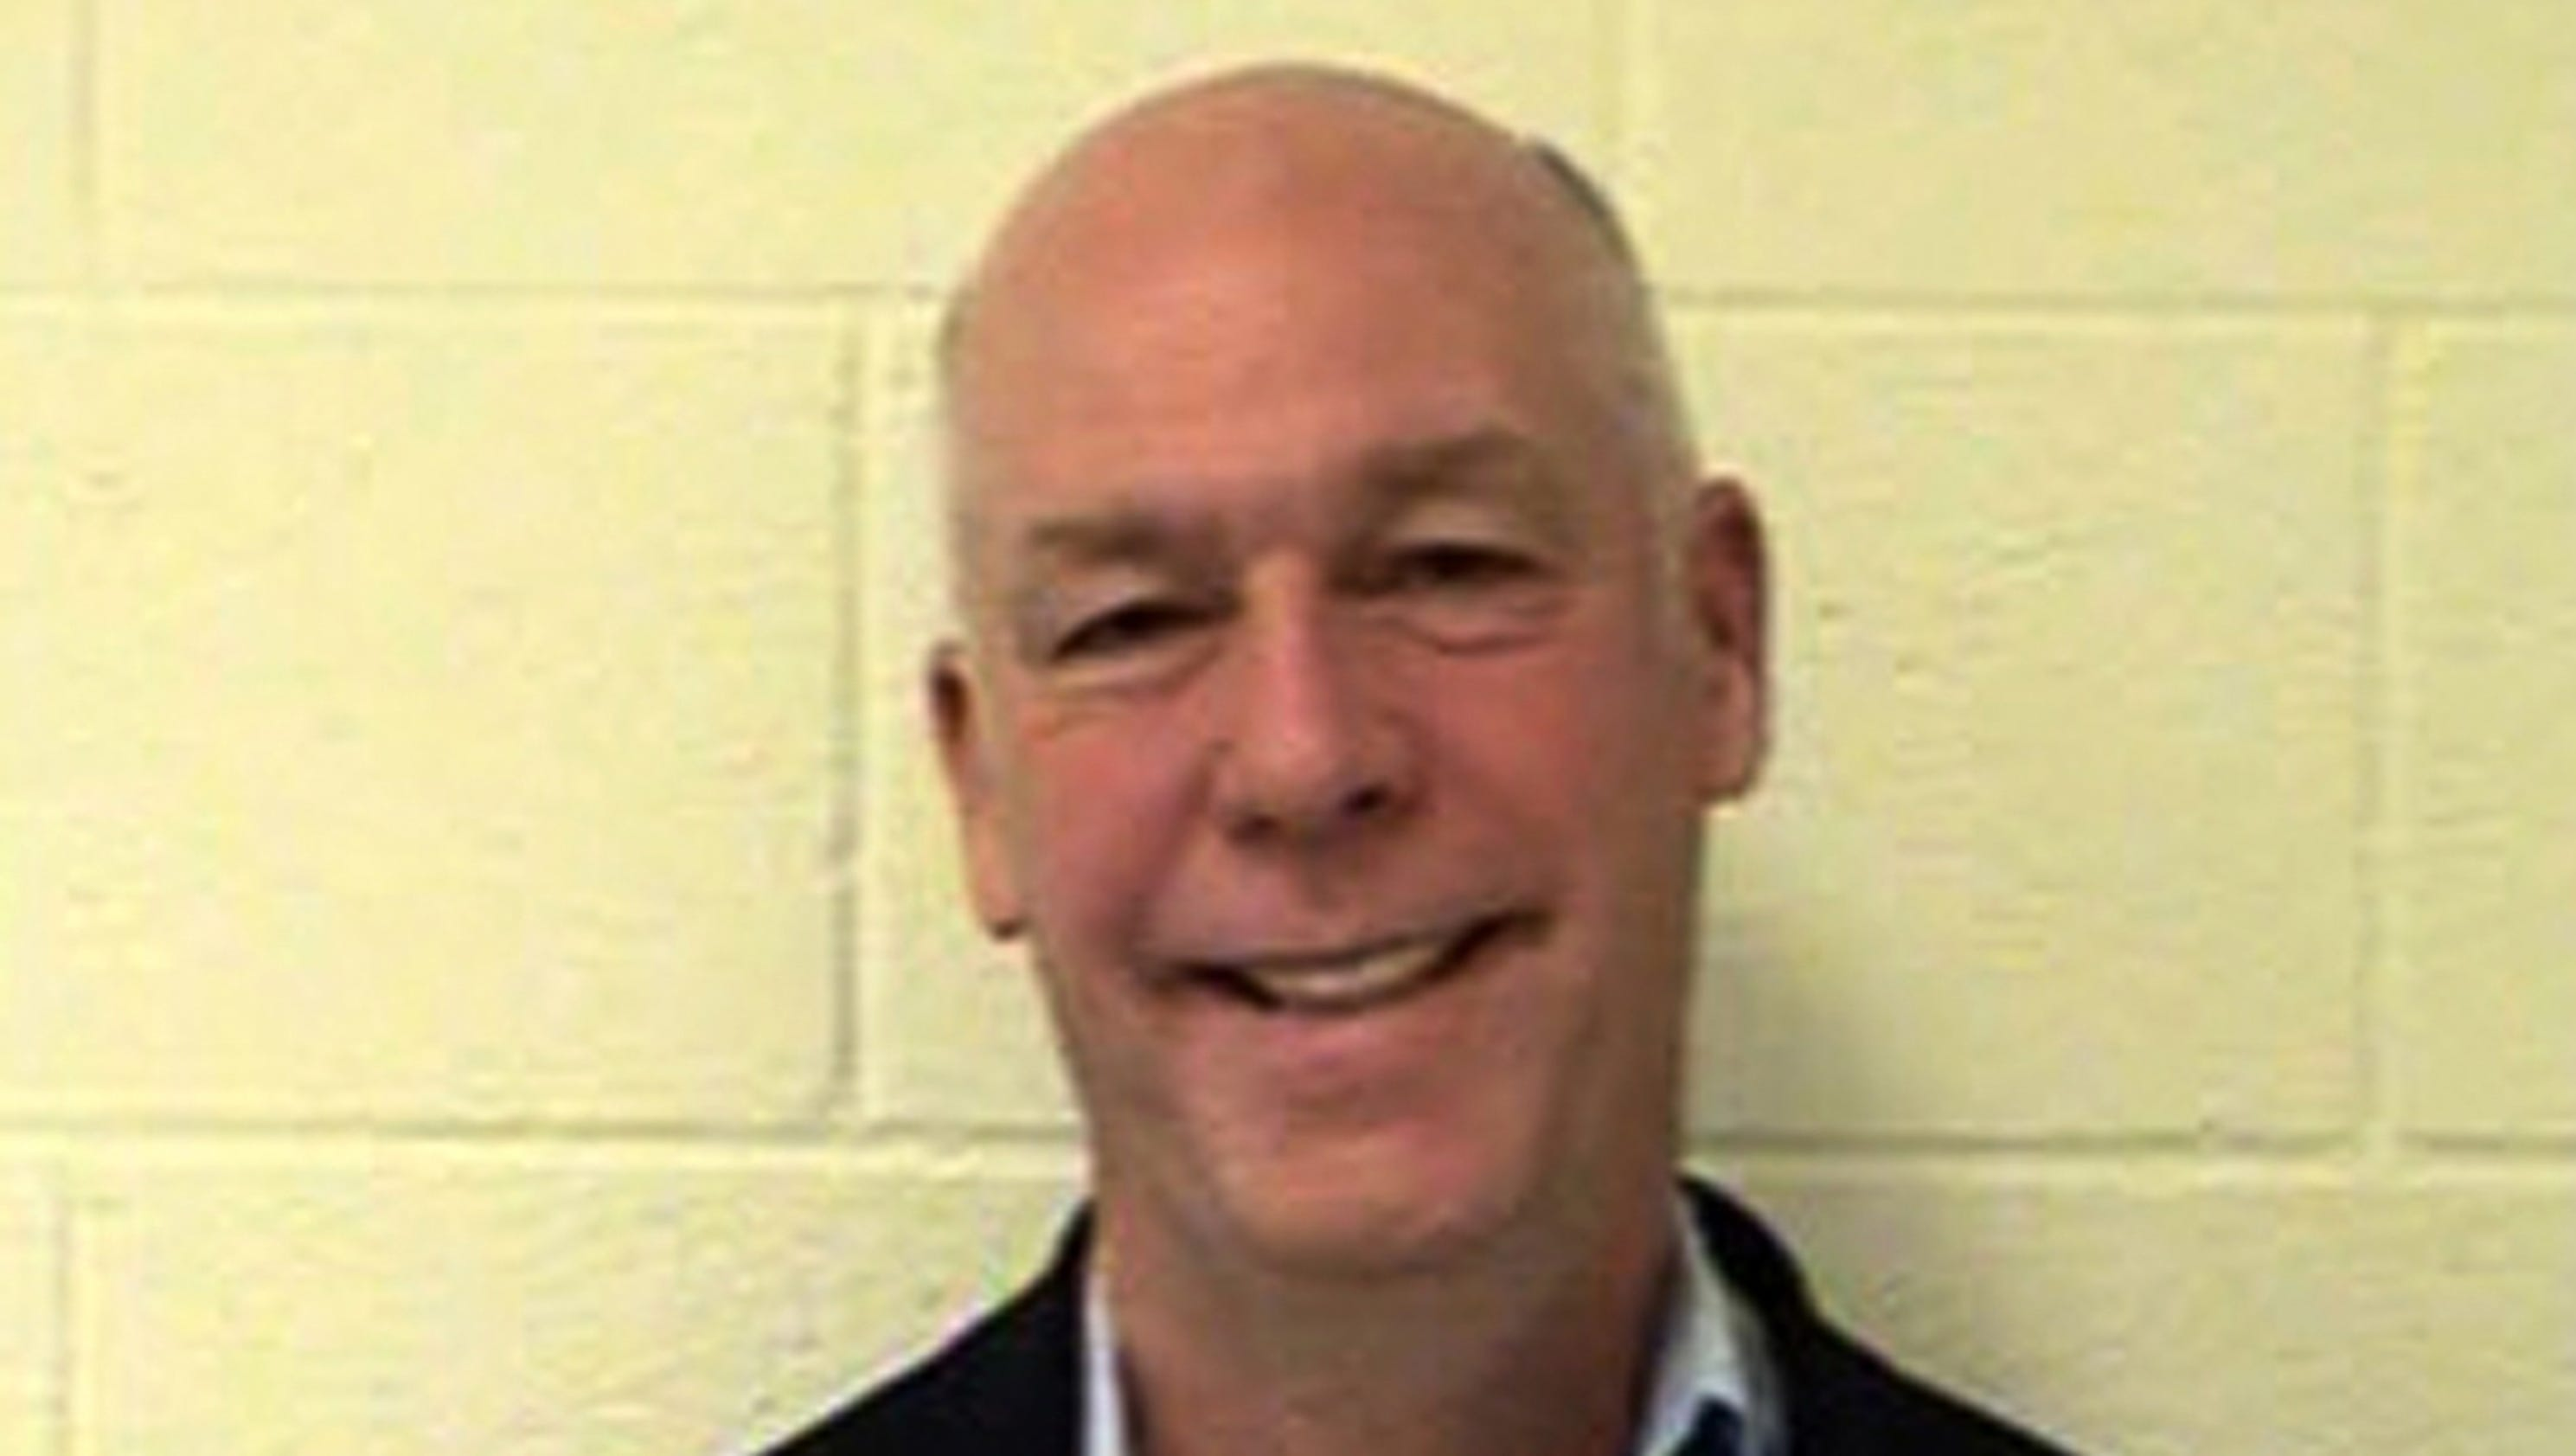 Montana Rep. Greg Gianforte's mugshot goes public